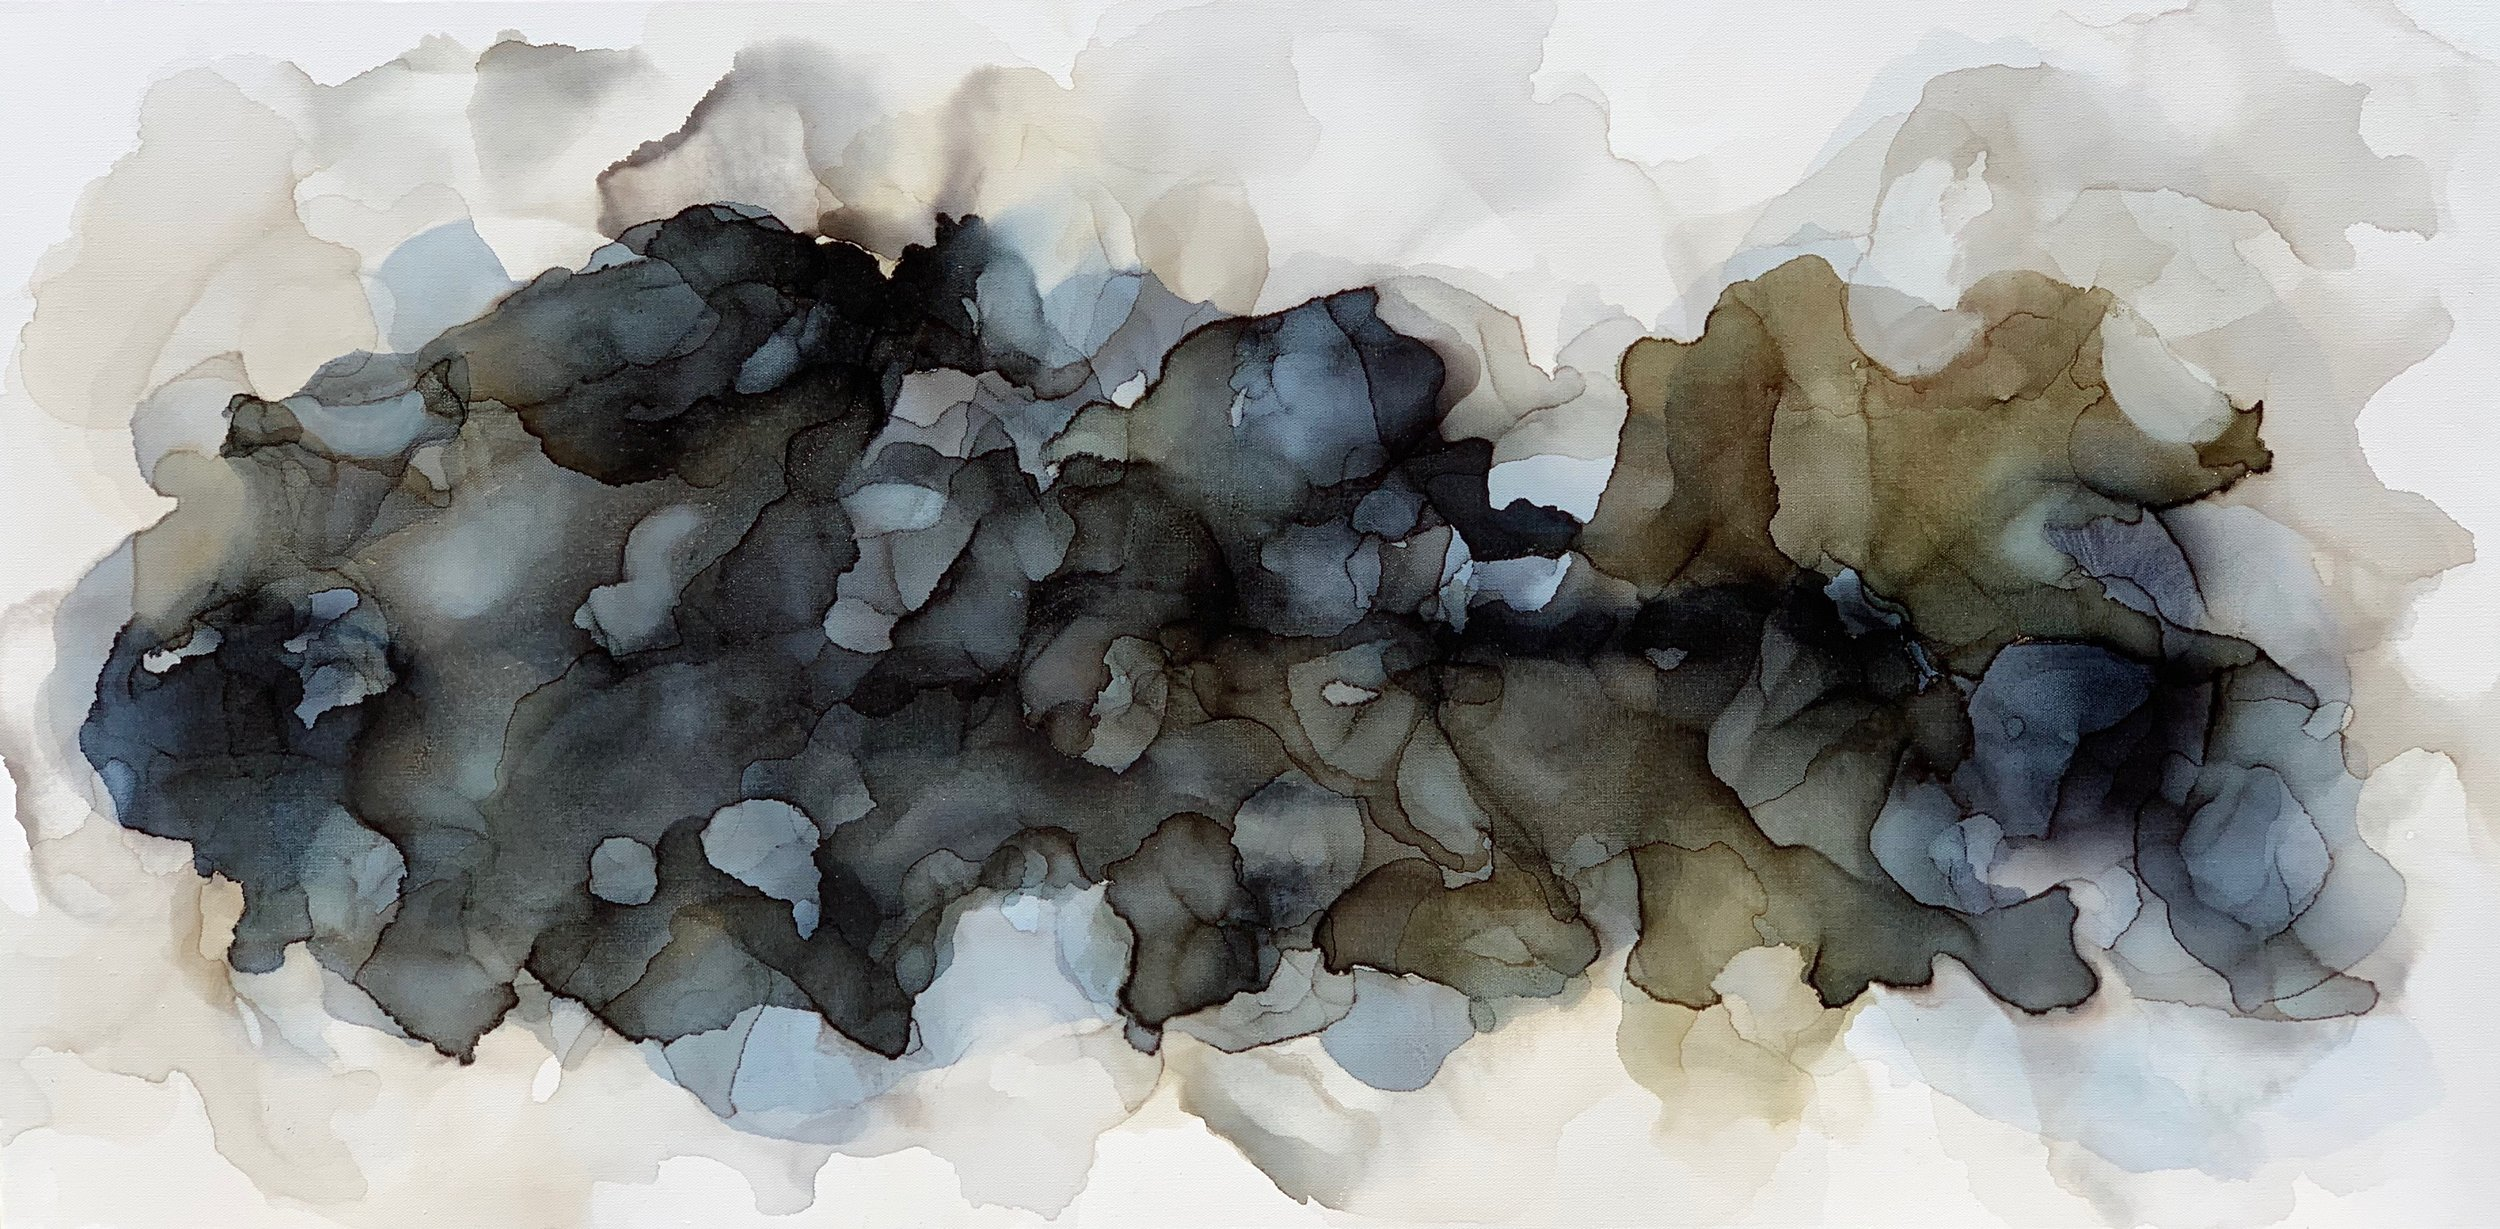 Music of Water#Alcohol Ink on Canvas#24 x 48 inches#$1,950